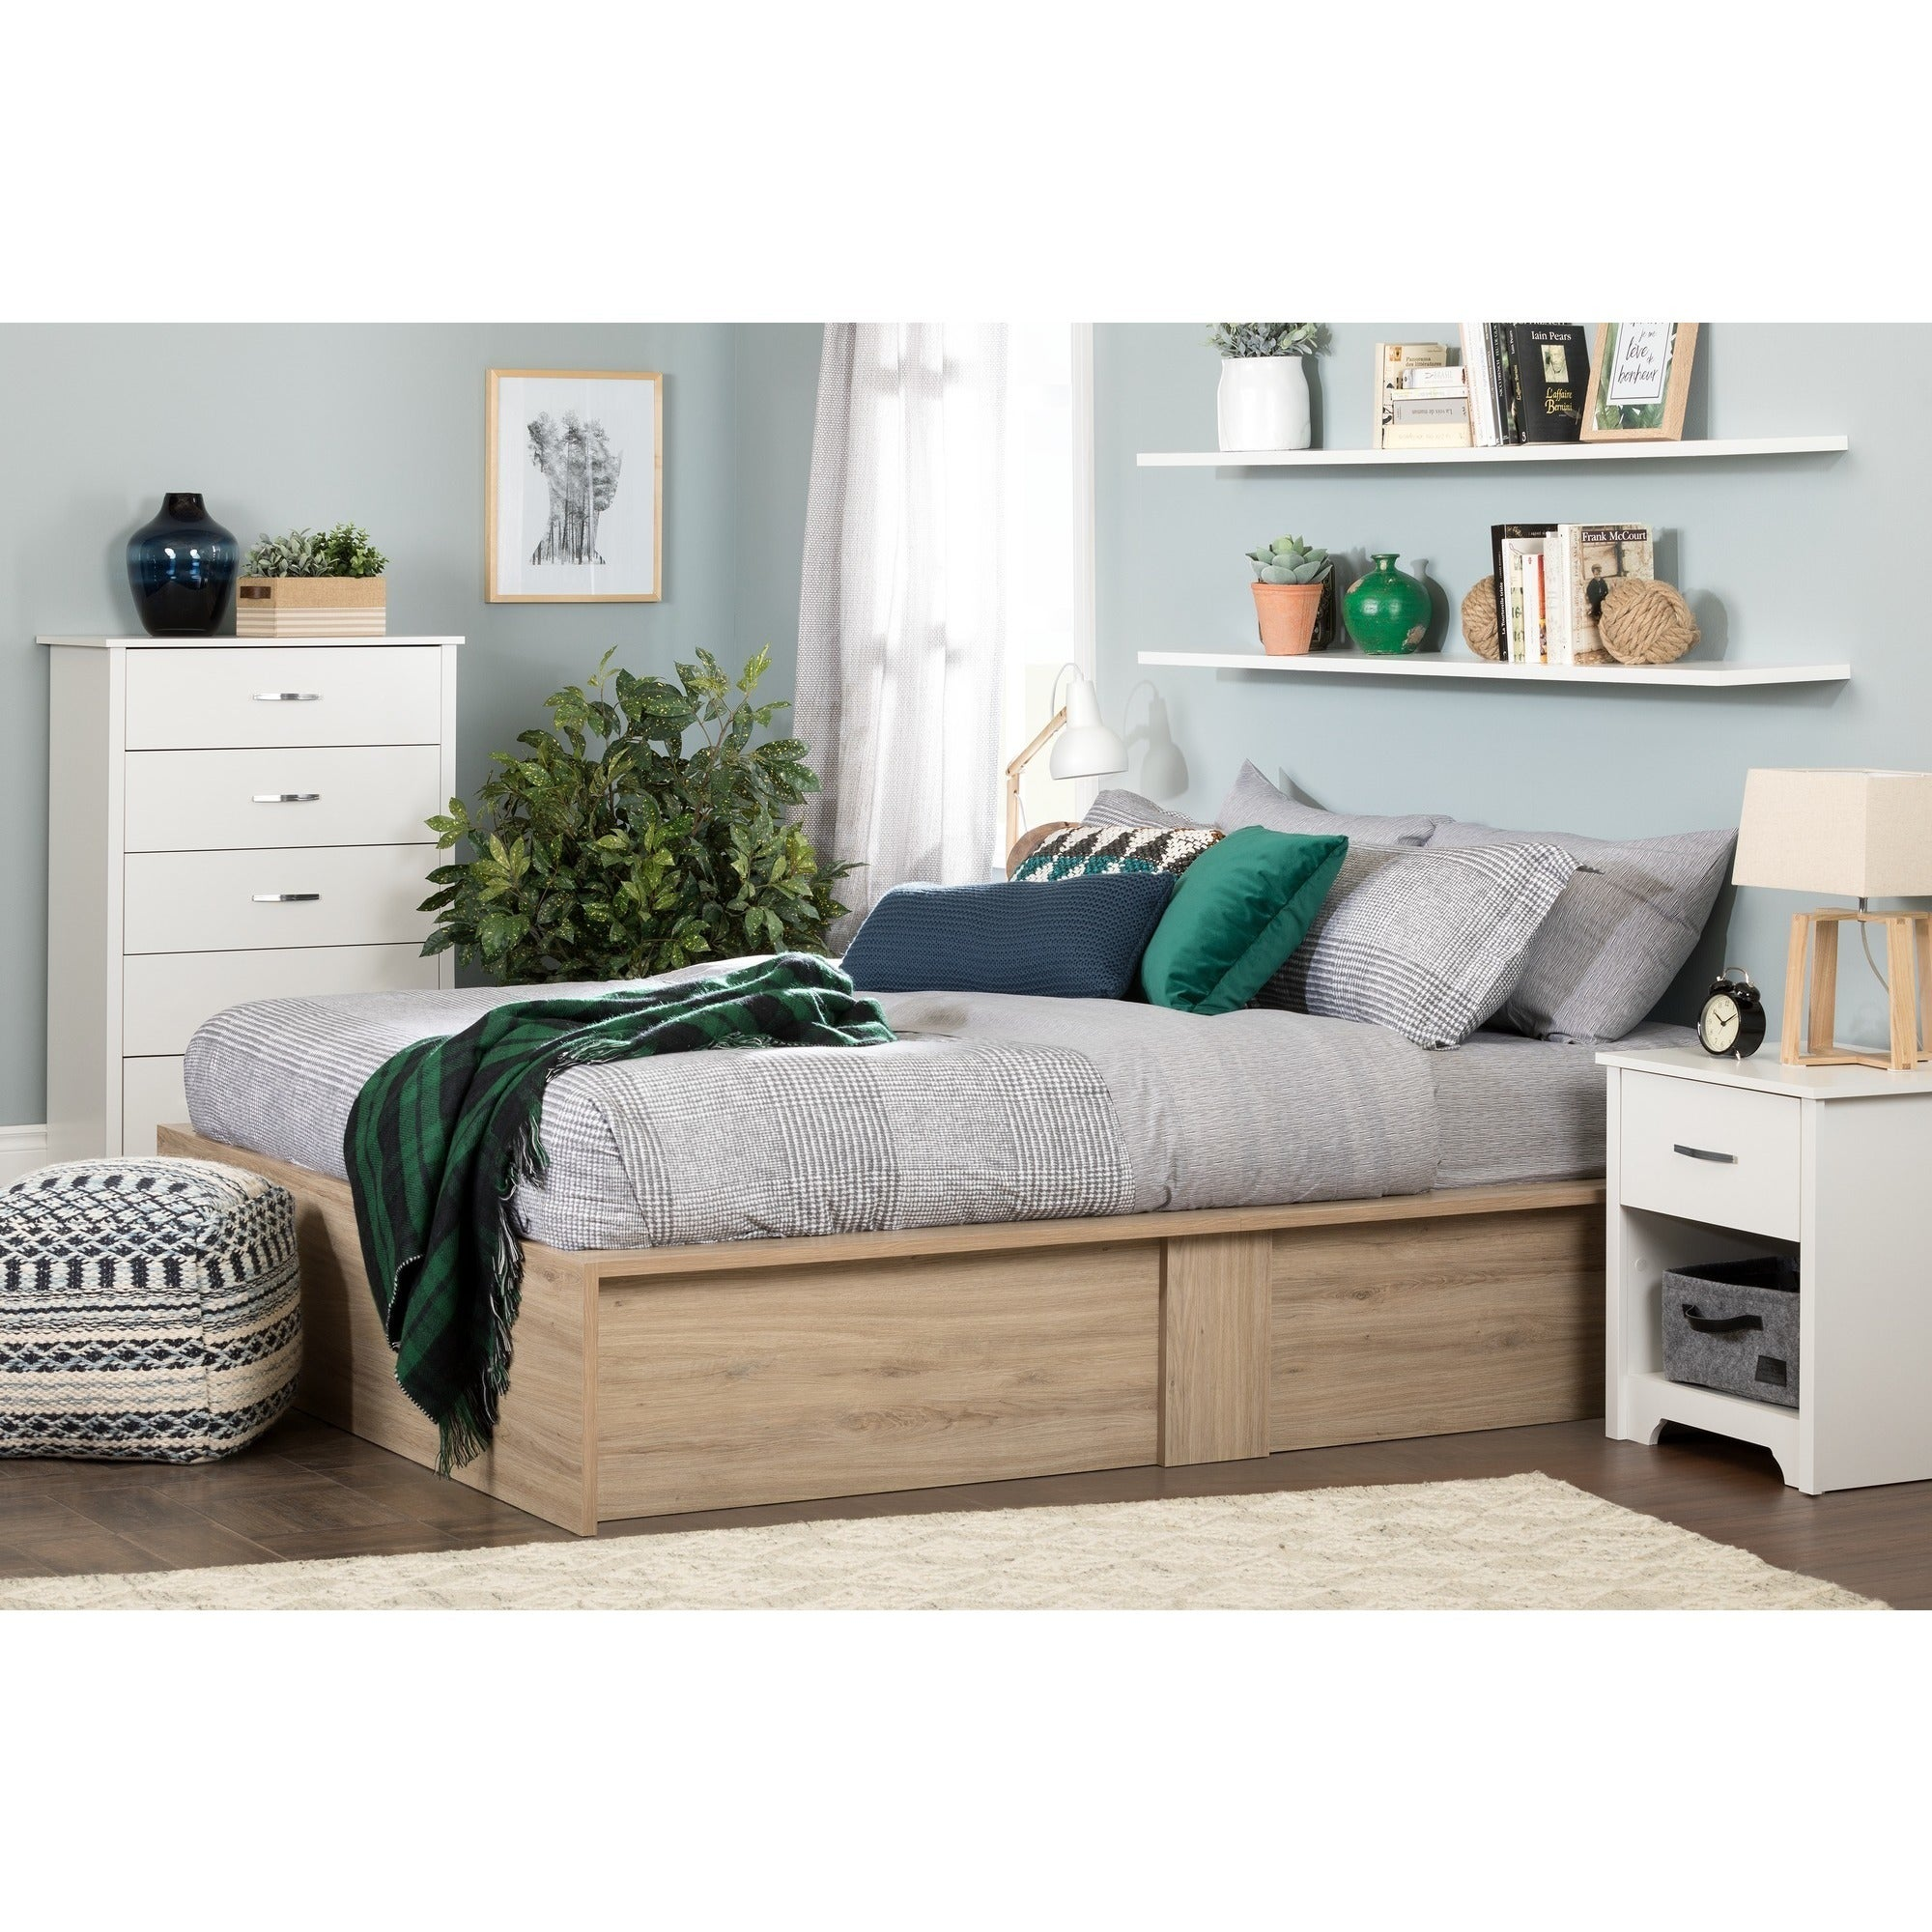 South Shore Fusion 60 inch Ottoman Queen Storage Bed Free Shipping